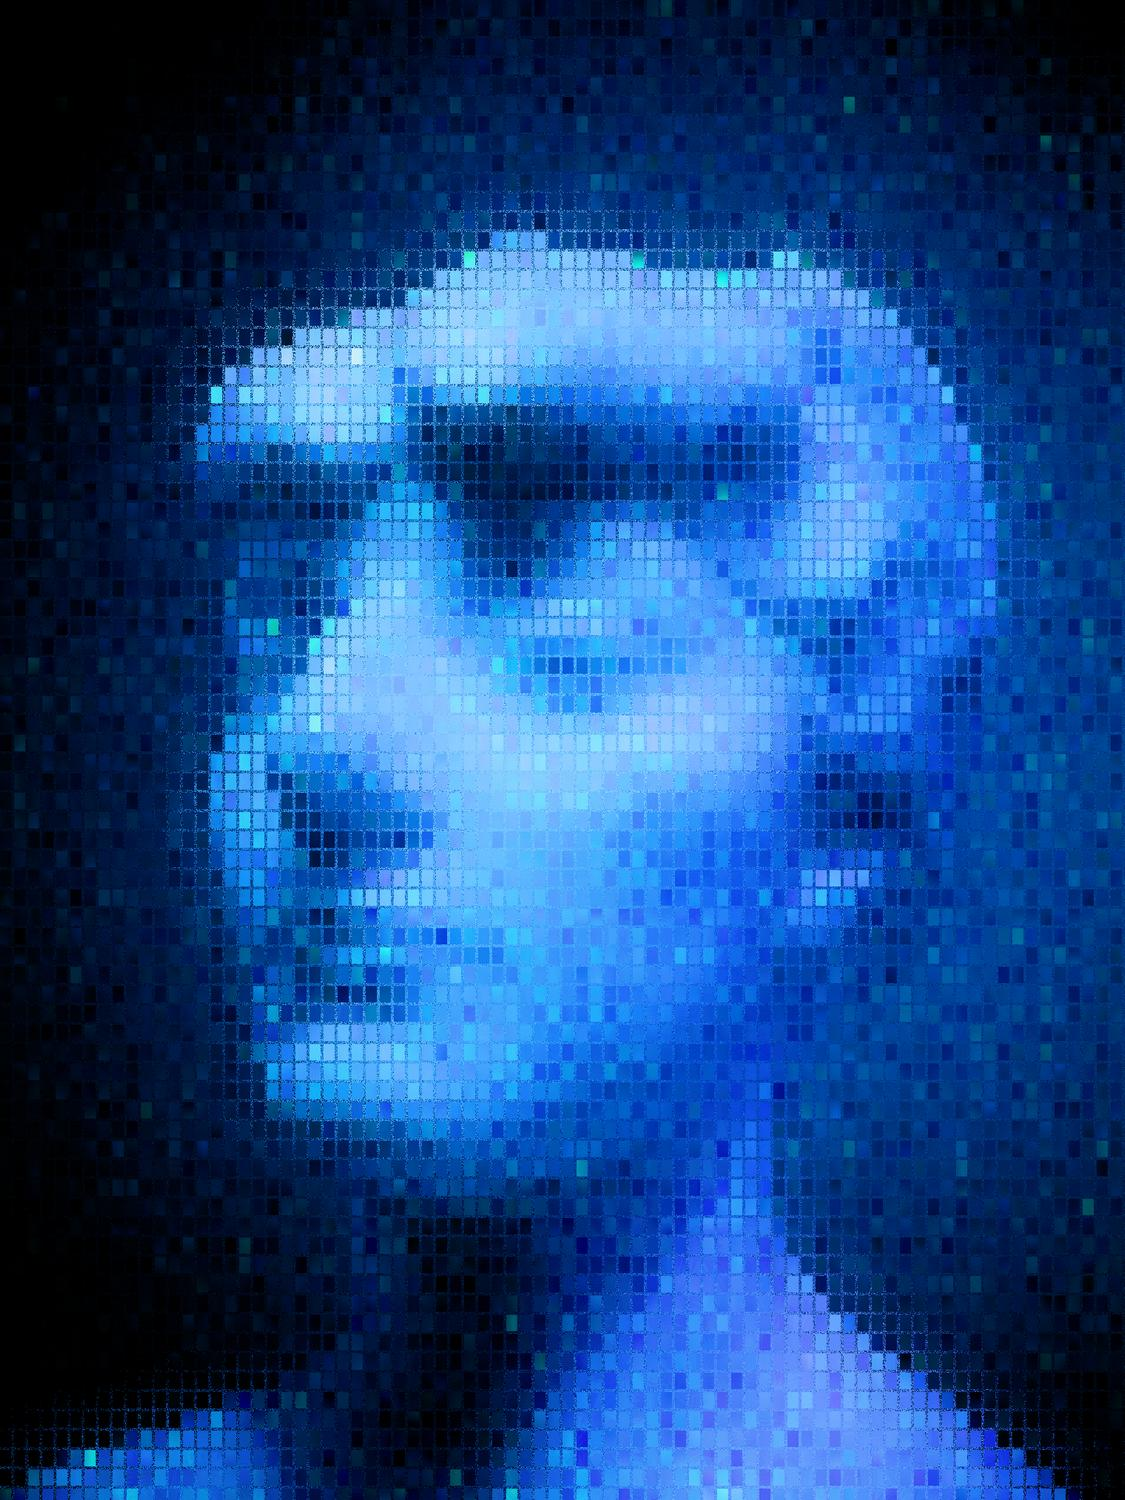 Blue bust - Blue notes - Metropolitan Museum, New York City - - art  - photography - by Tony Karp